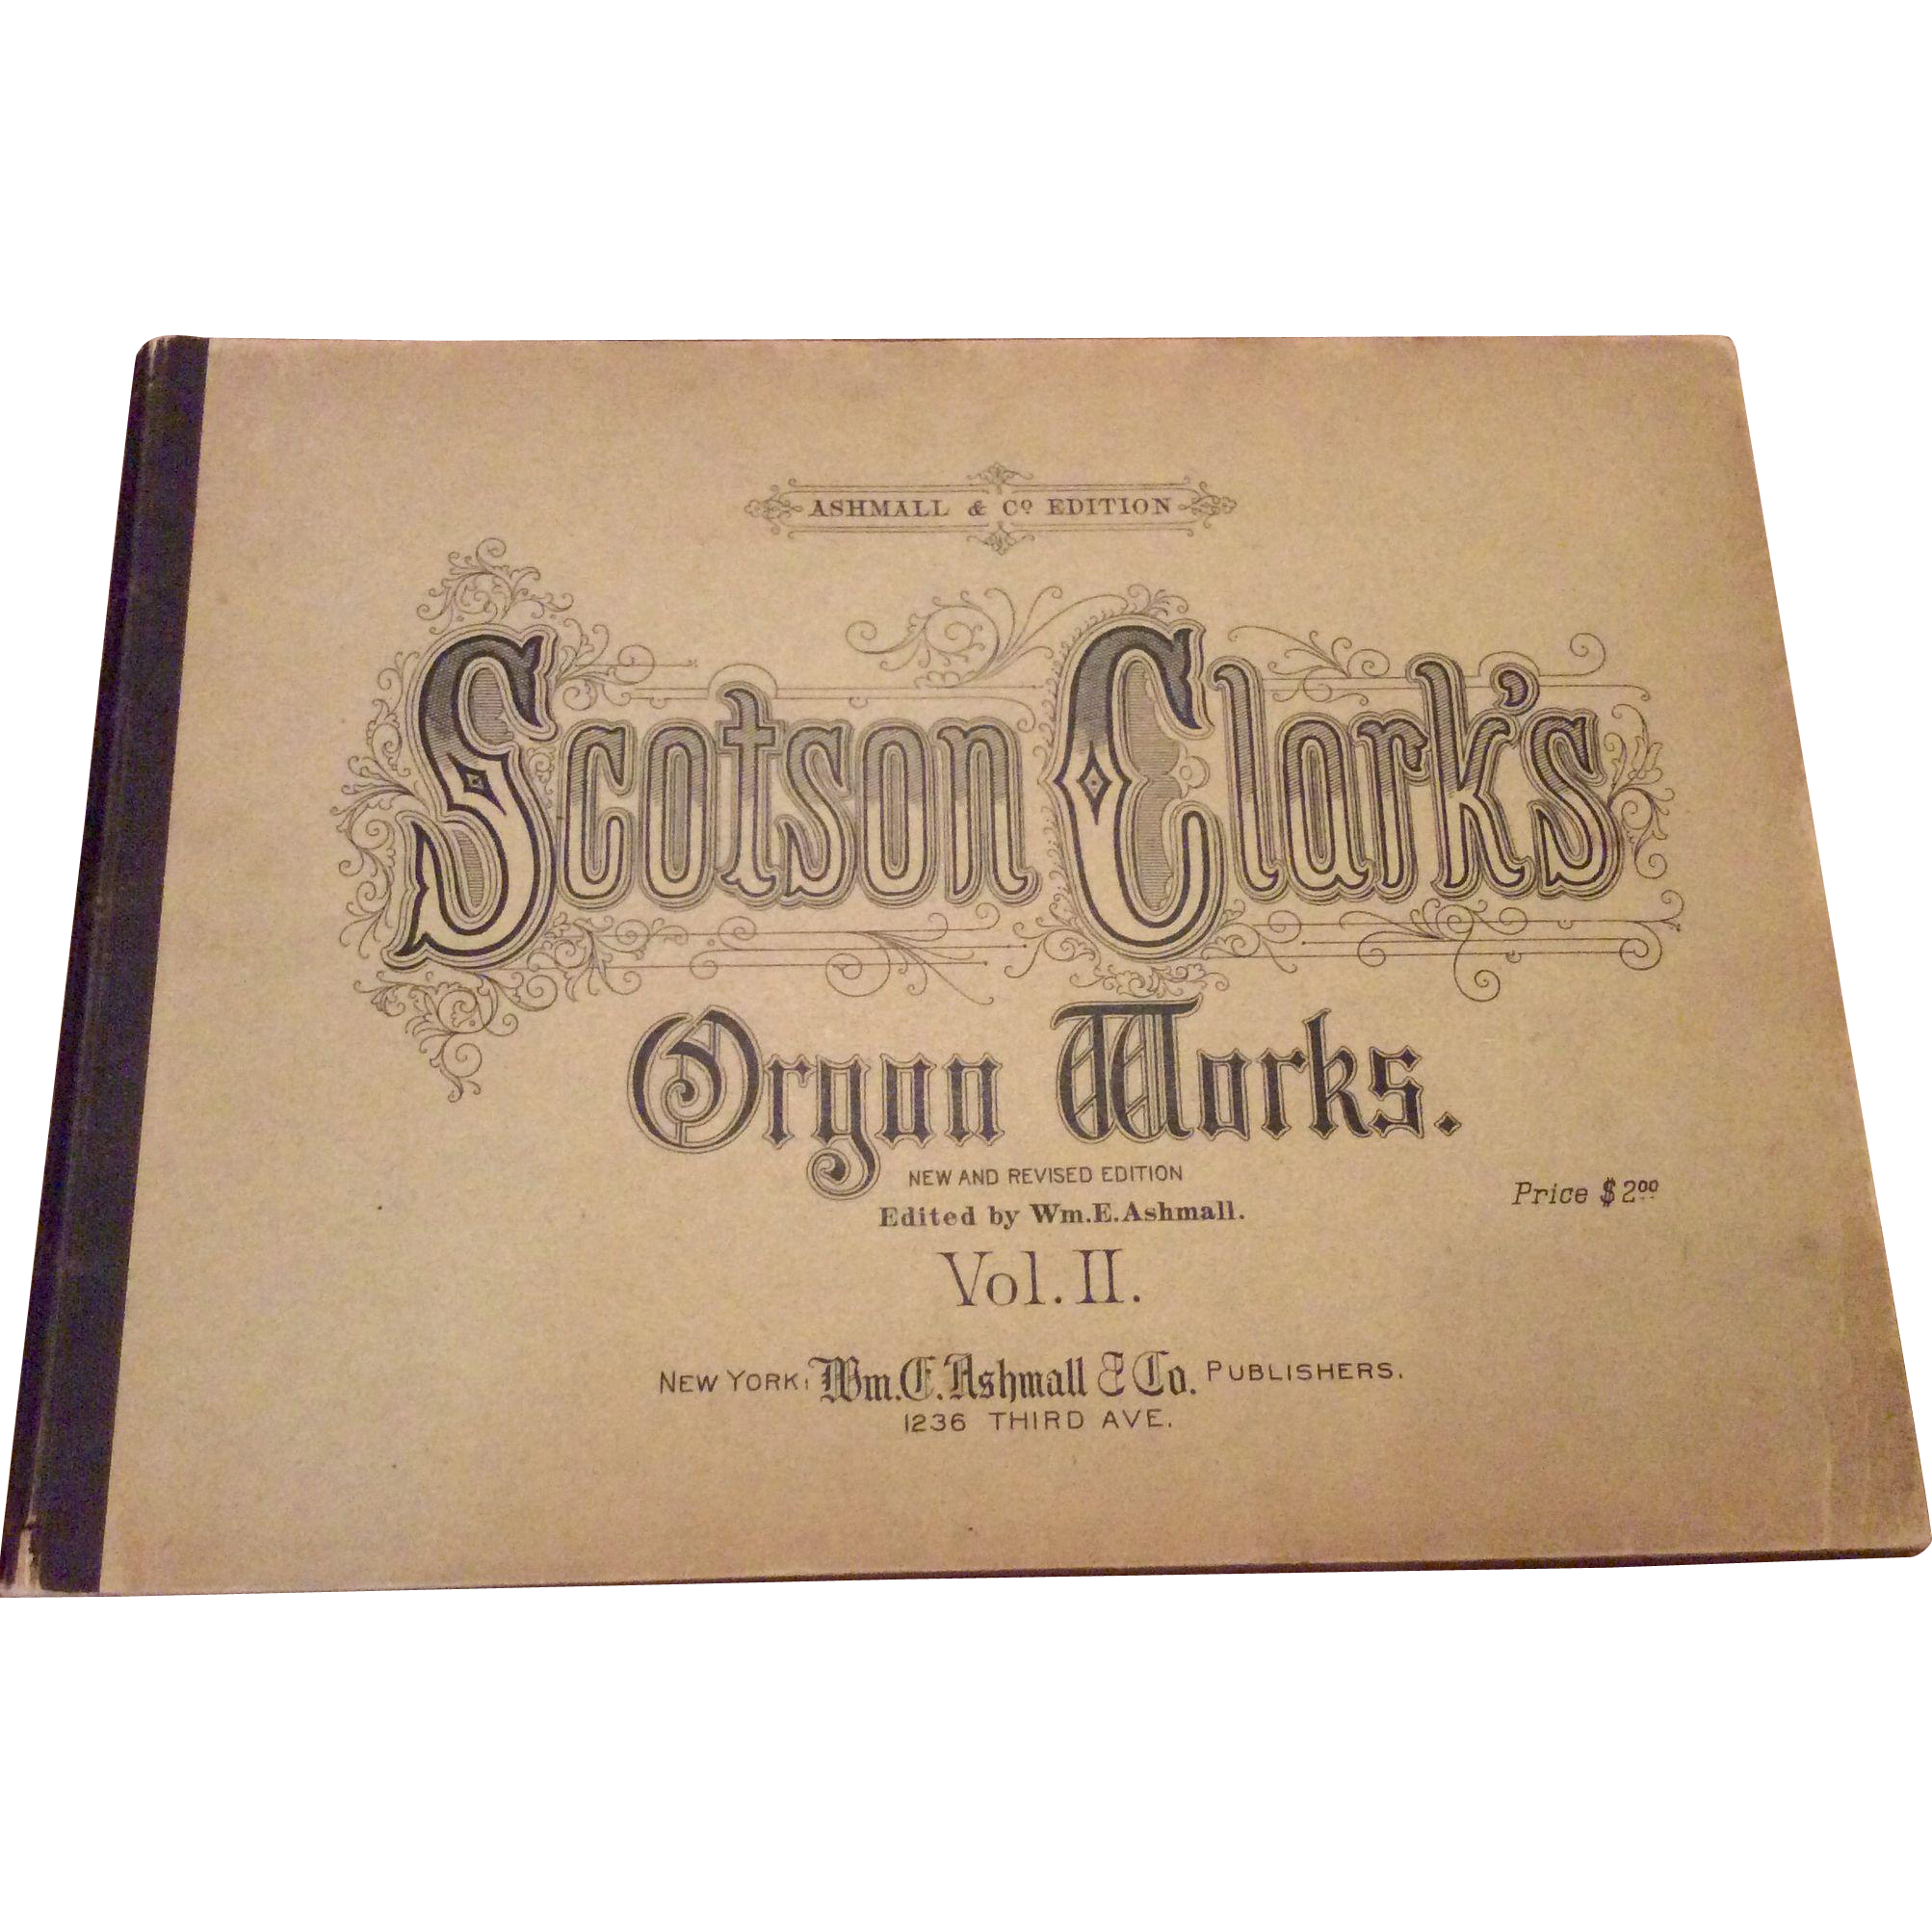 1891 Scotson Clark's Organ Works